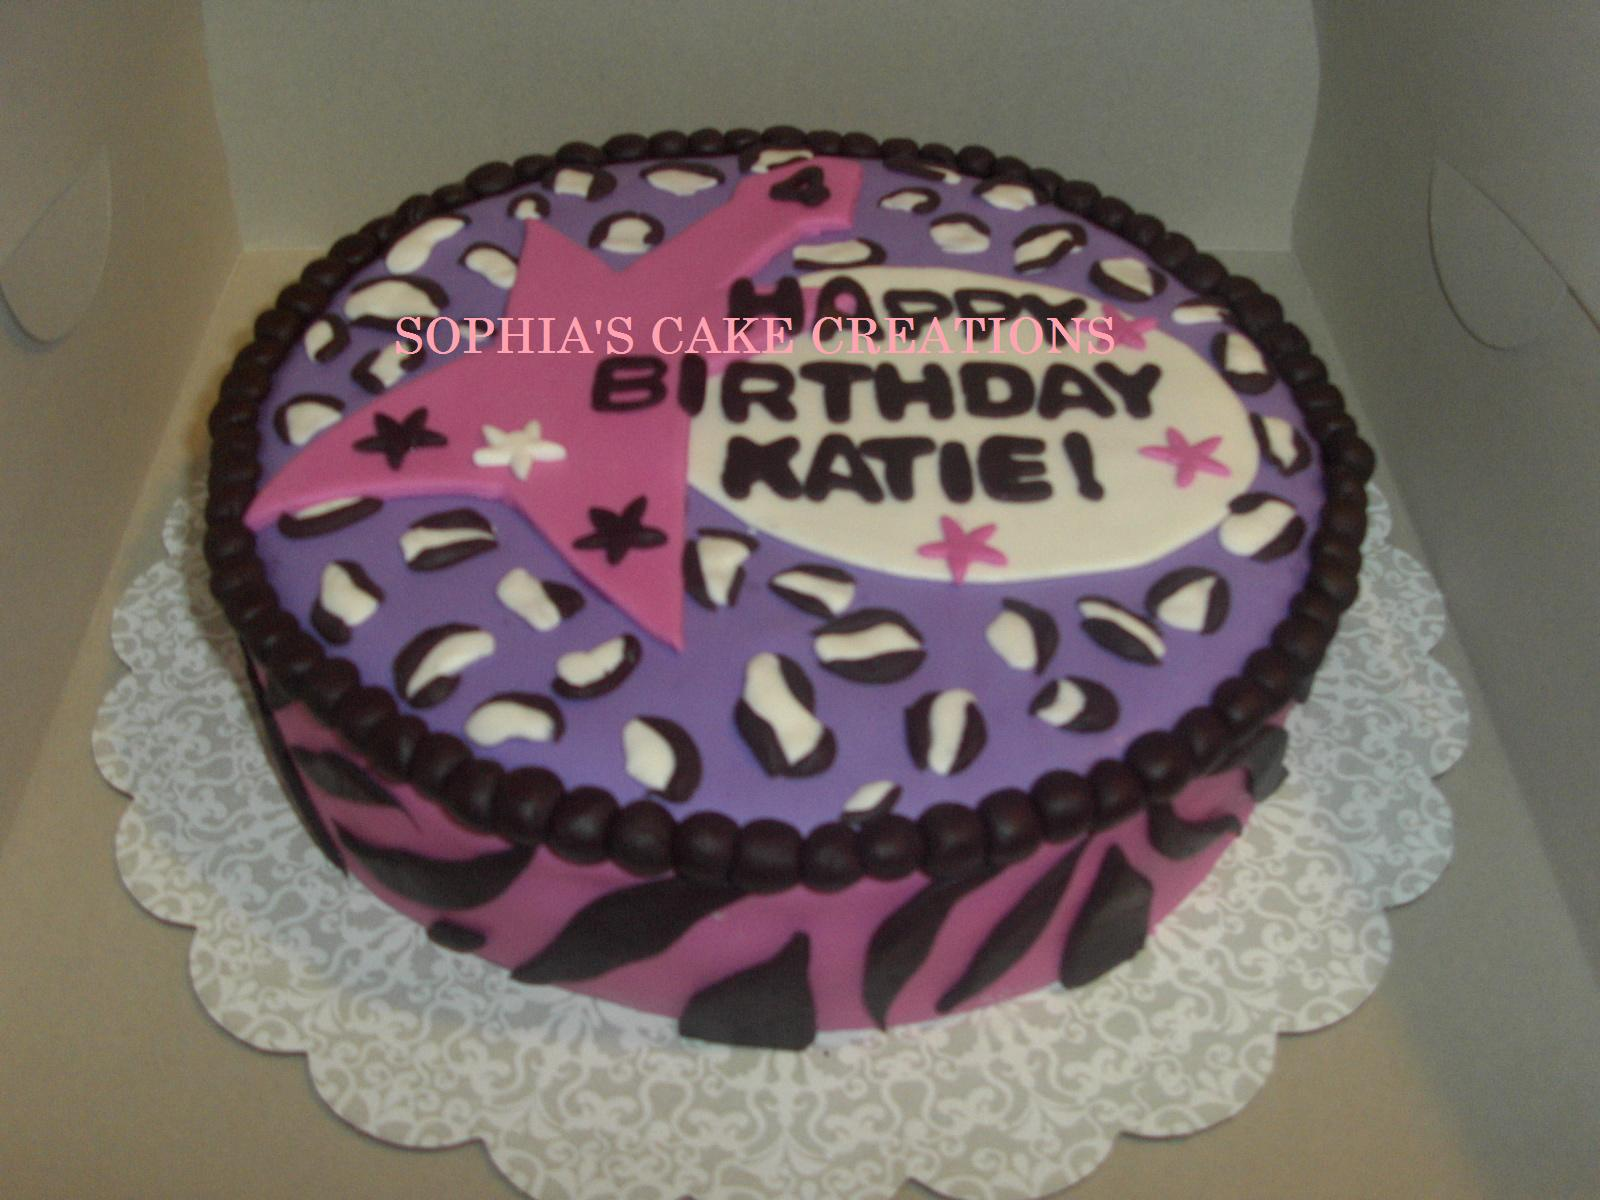 Rock Girl Birthday Cake http://www.sophiascakecreations.com/2010/04/this-cake-was-made-for-little-girls-4th.html